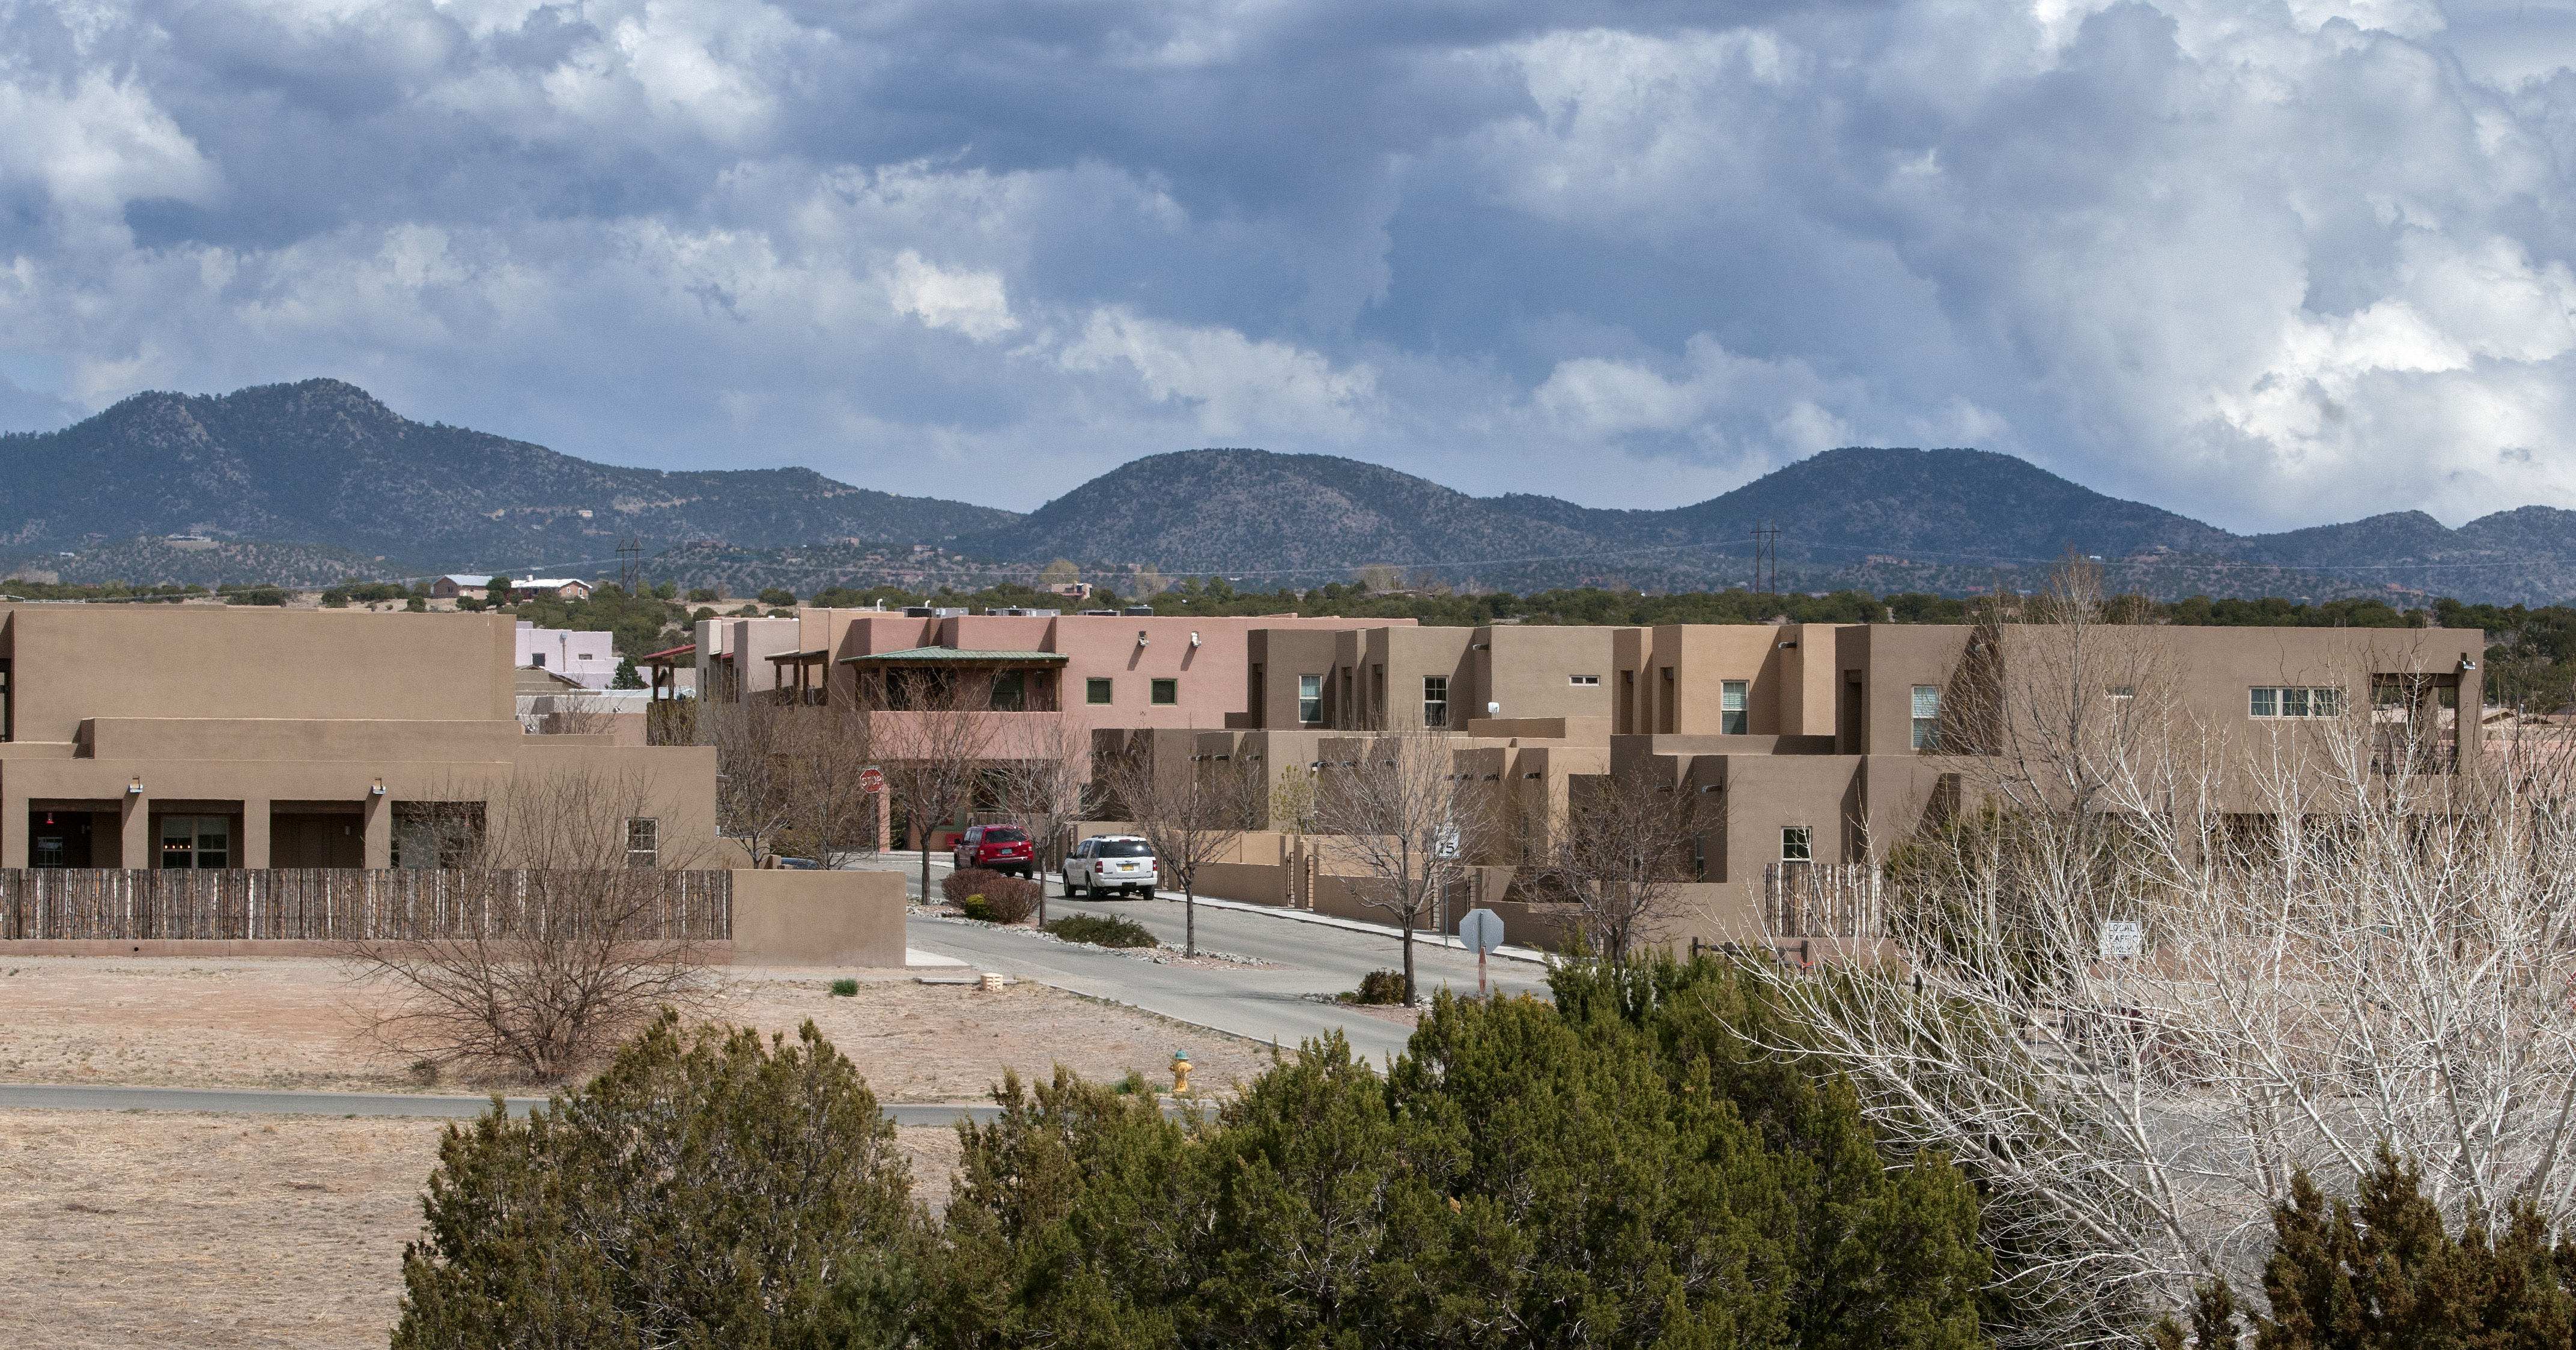 Santa Fe County developments will add to housing stock